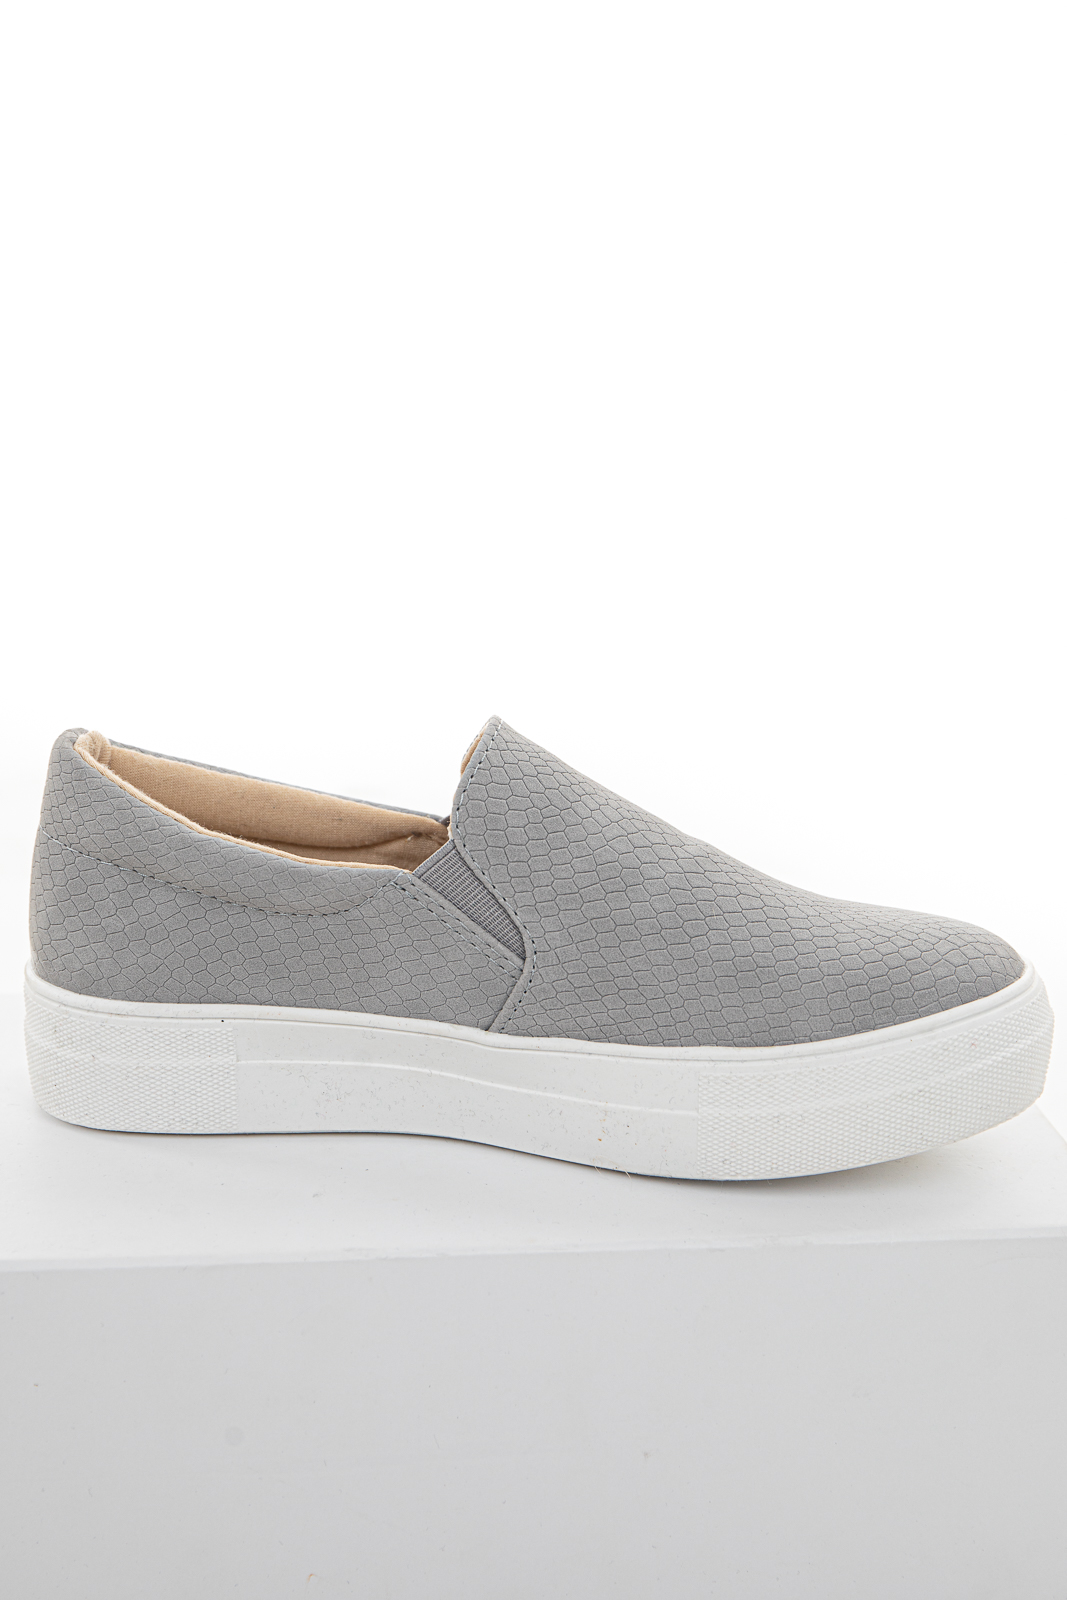 Steel Snakeskin Textured Slip On Sneakers with Rubber Soles